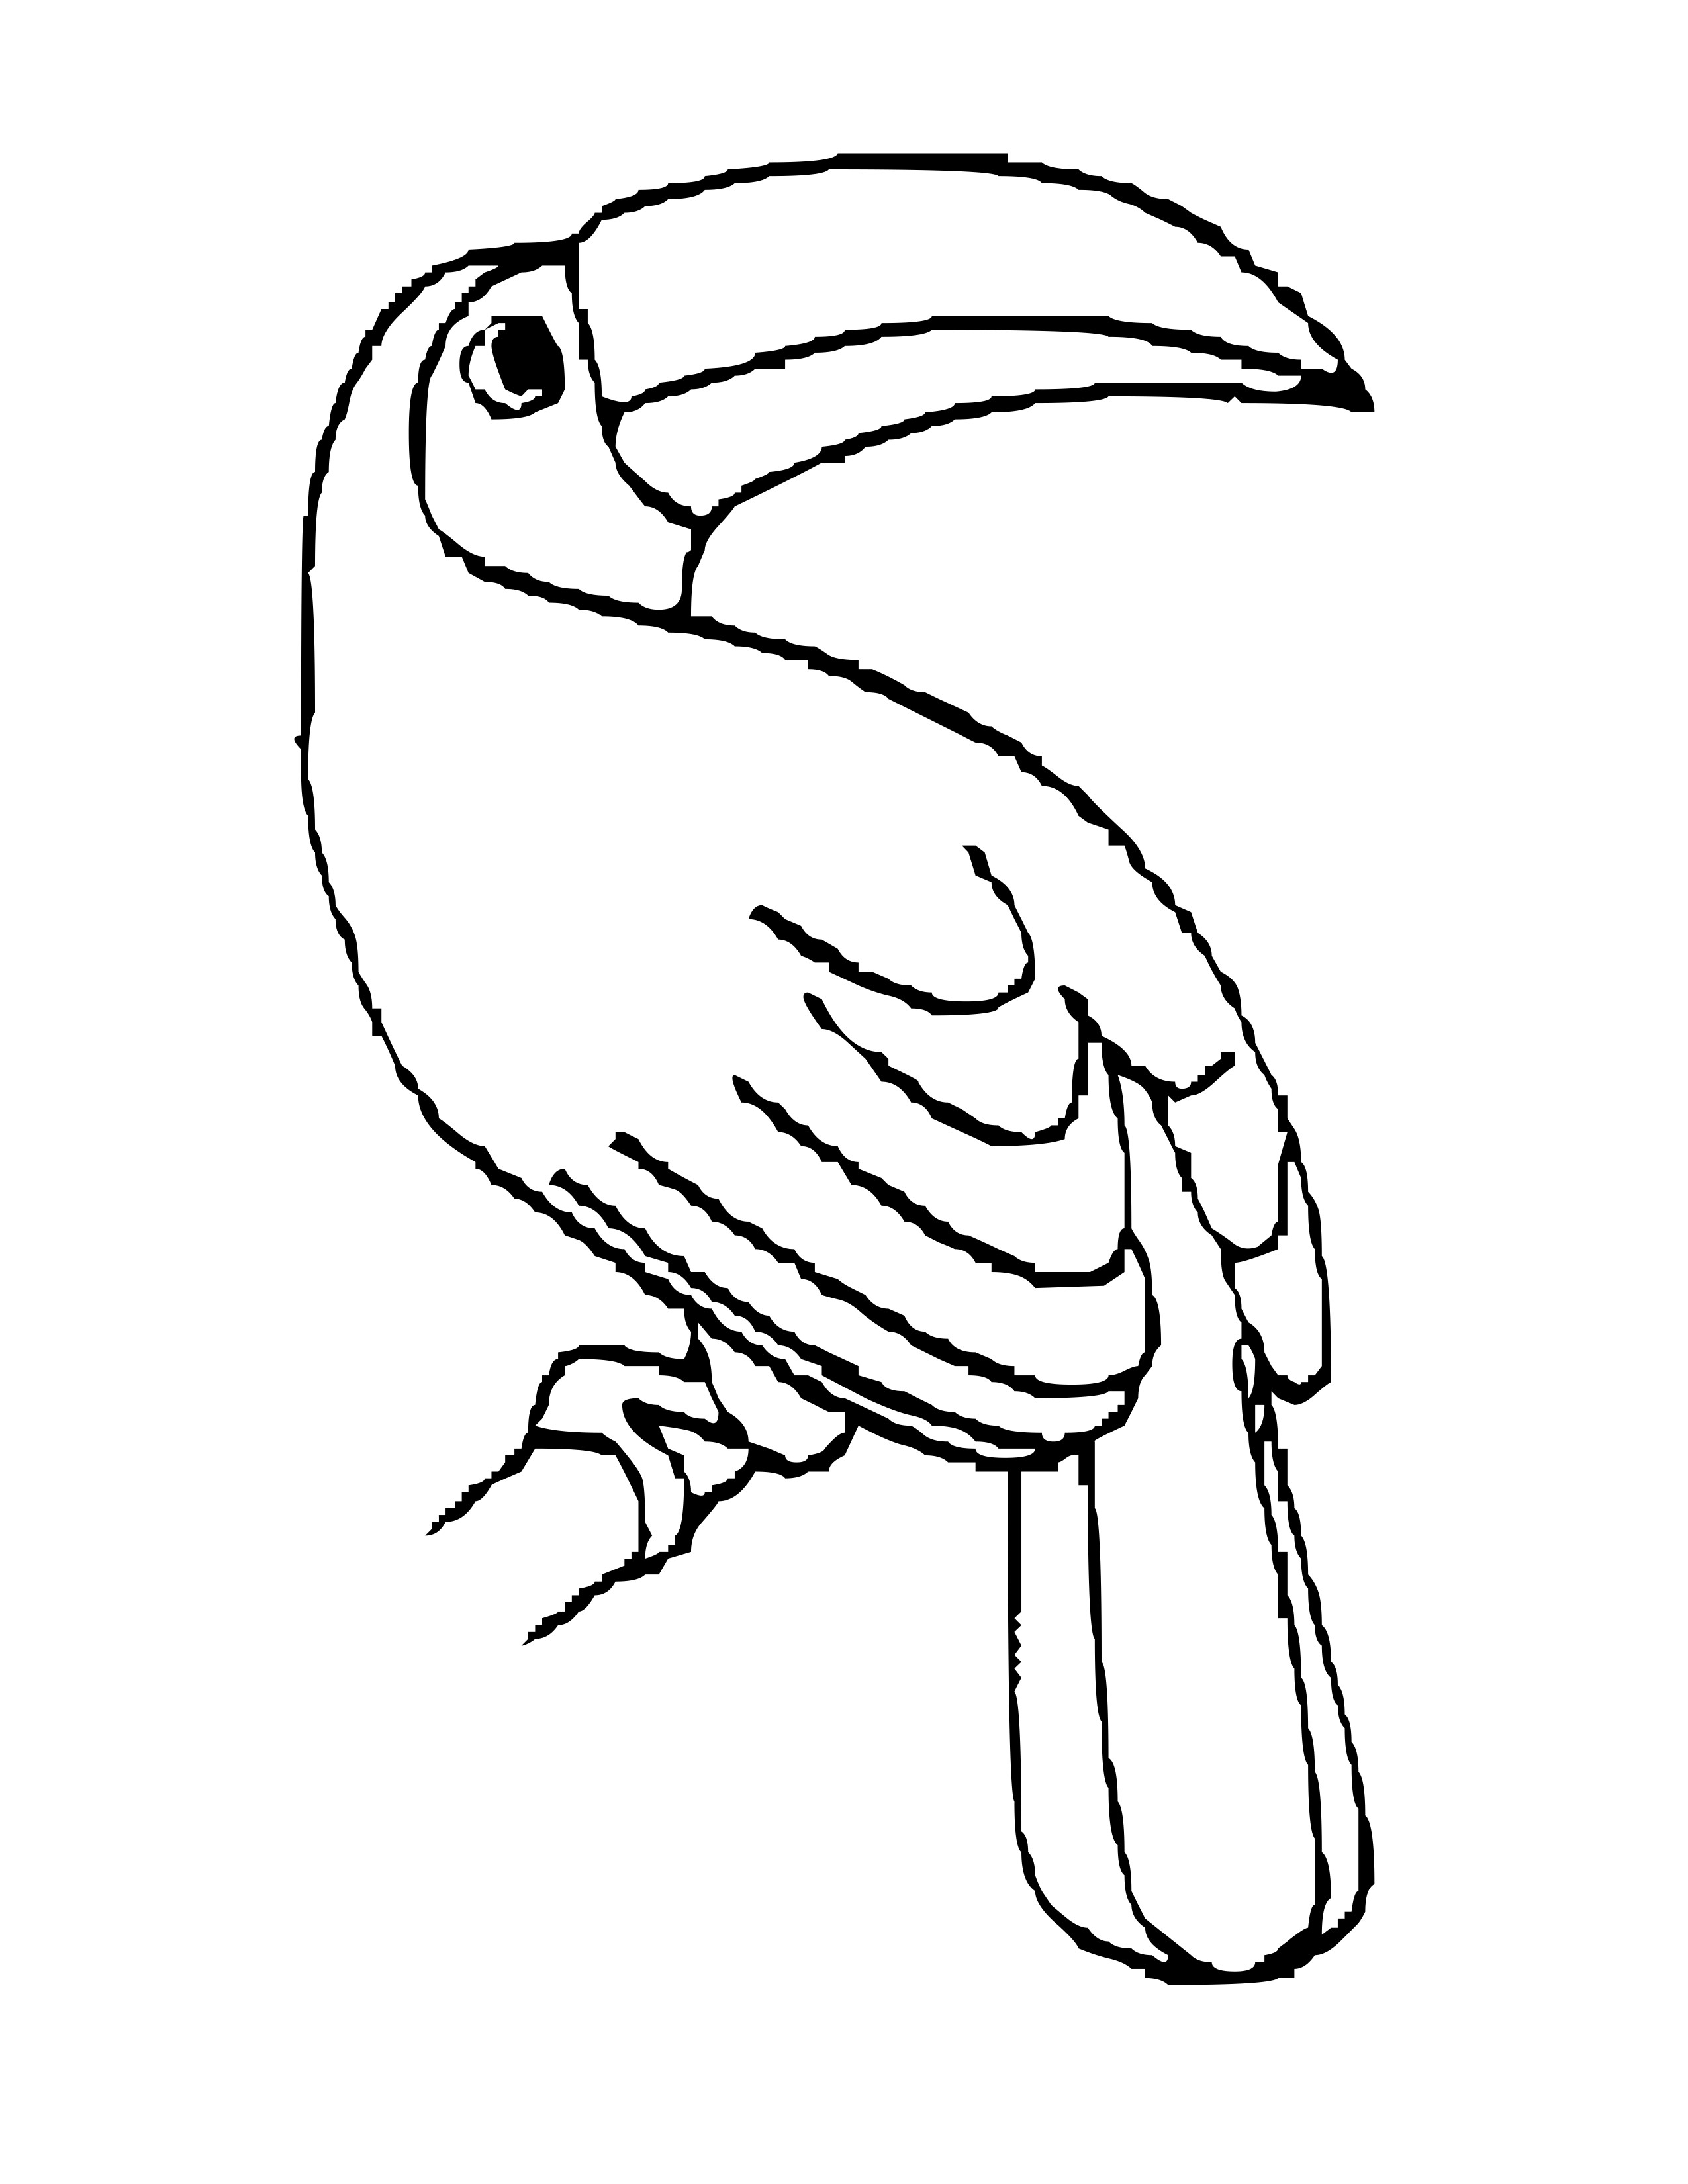 Line Drawings Of Rainforest Animals : Toucan outline clipart best